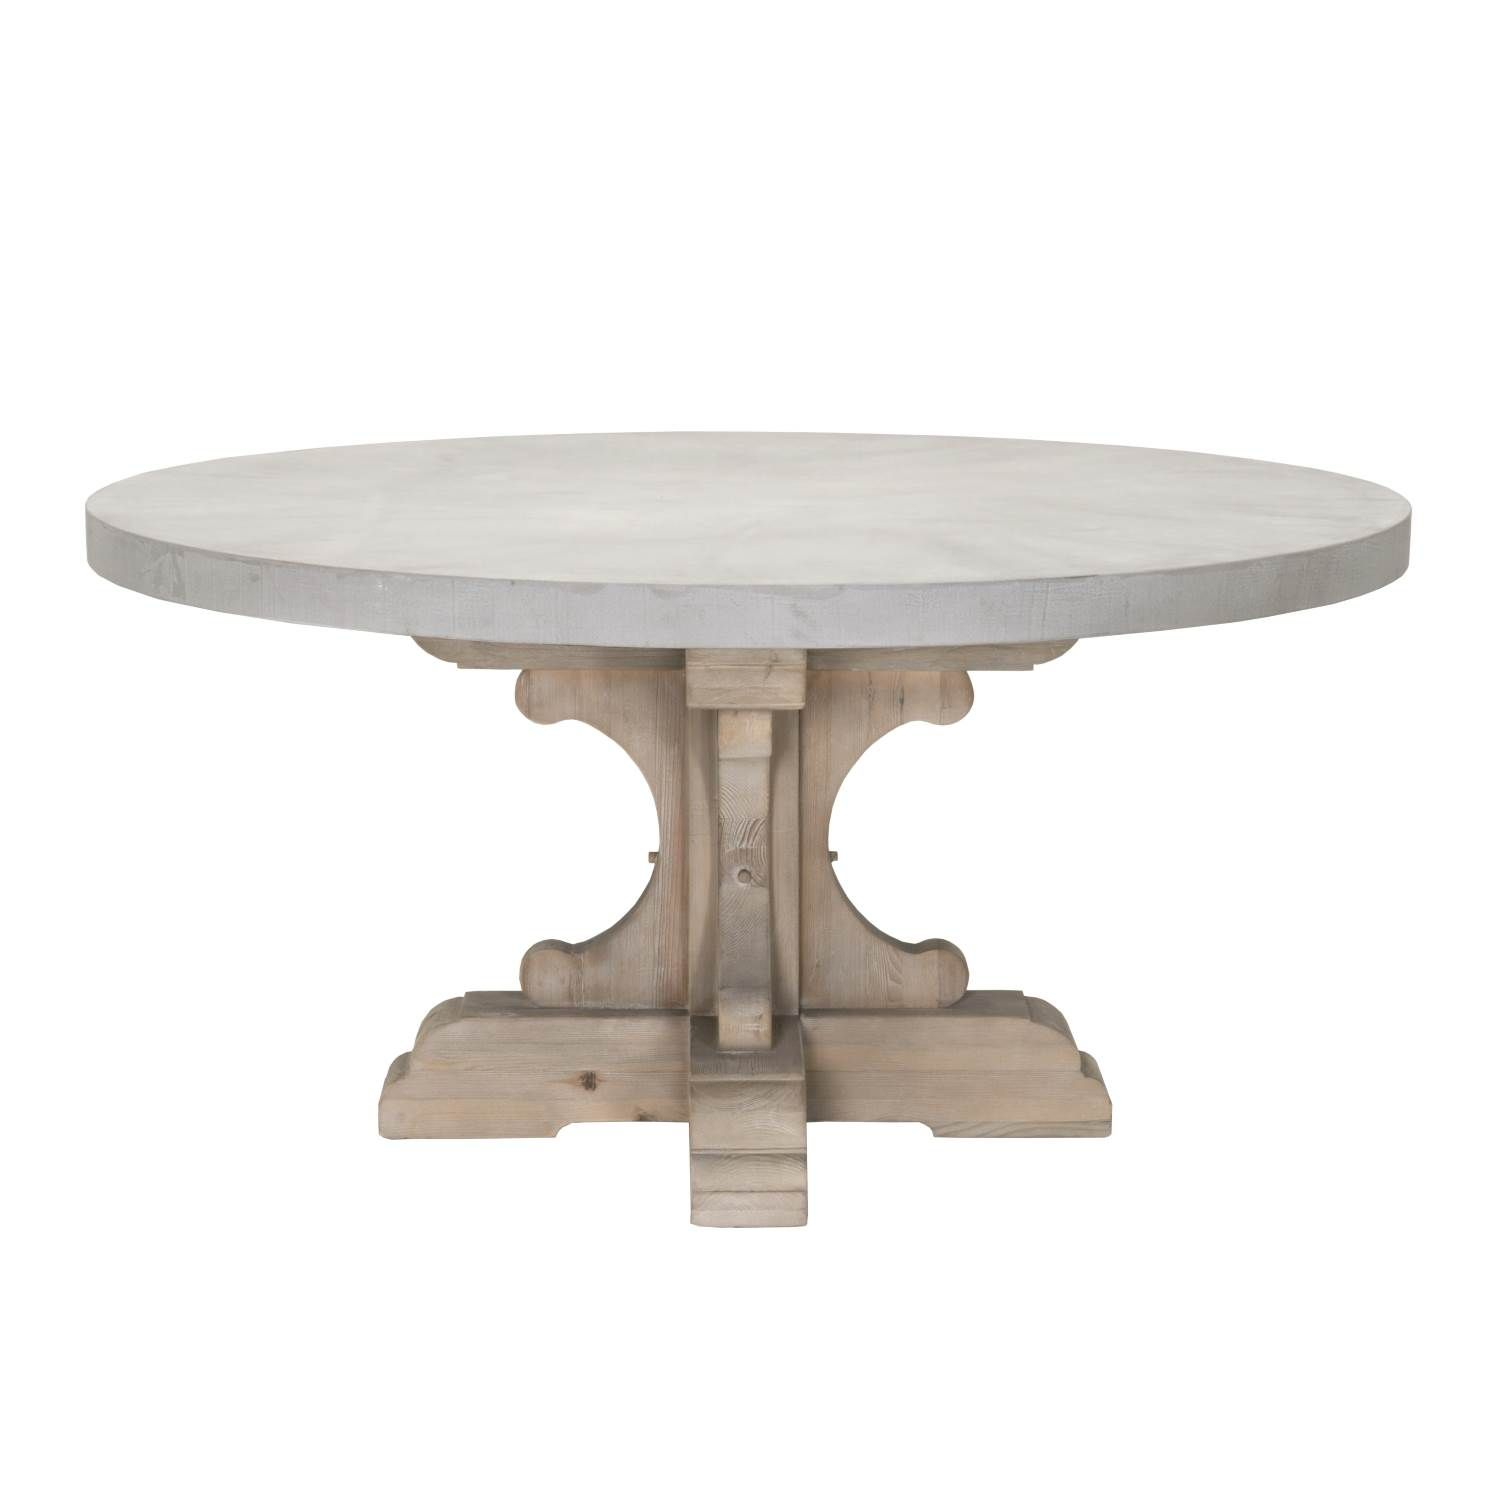 Bastille Round Dining Table Top Round Concrete Dining Table Round Dining Table Stone Top Dining Table #stone #living #room #tables